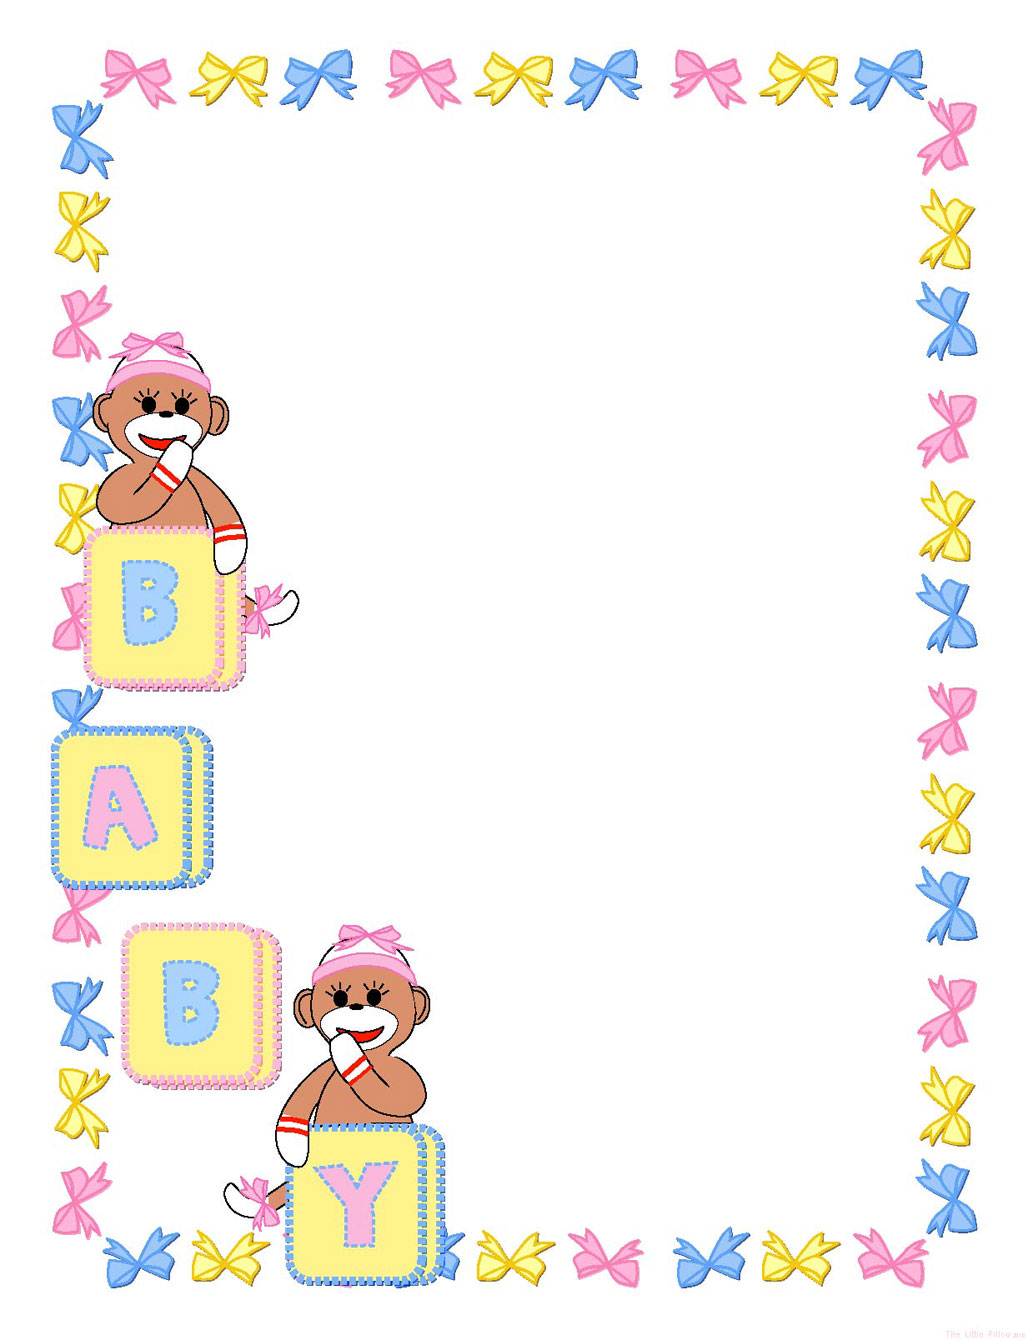 Free Baby Borders For Word Documents : borders, documents, Border, Cliparts,, Download, Clipart, Library